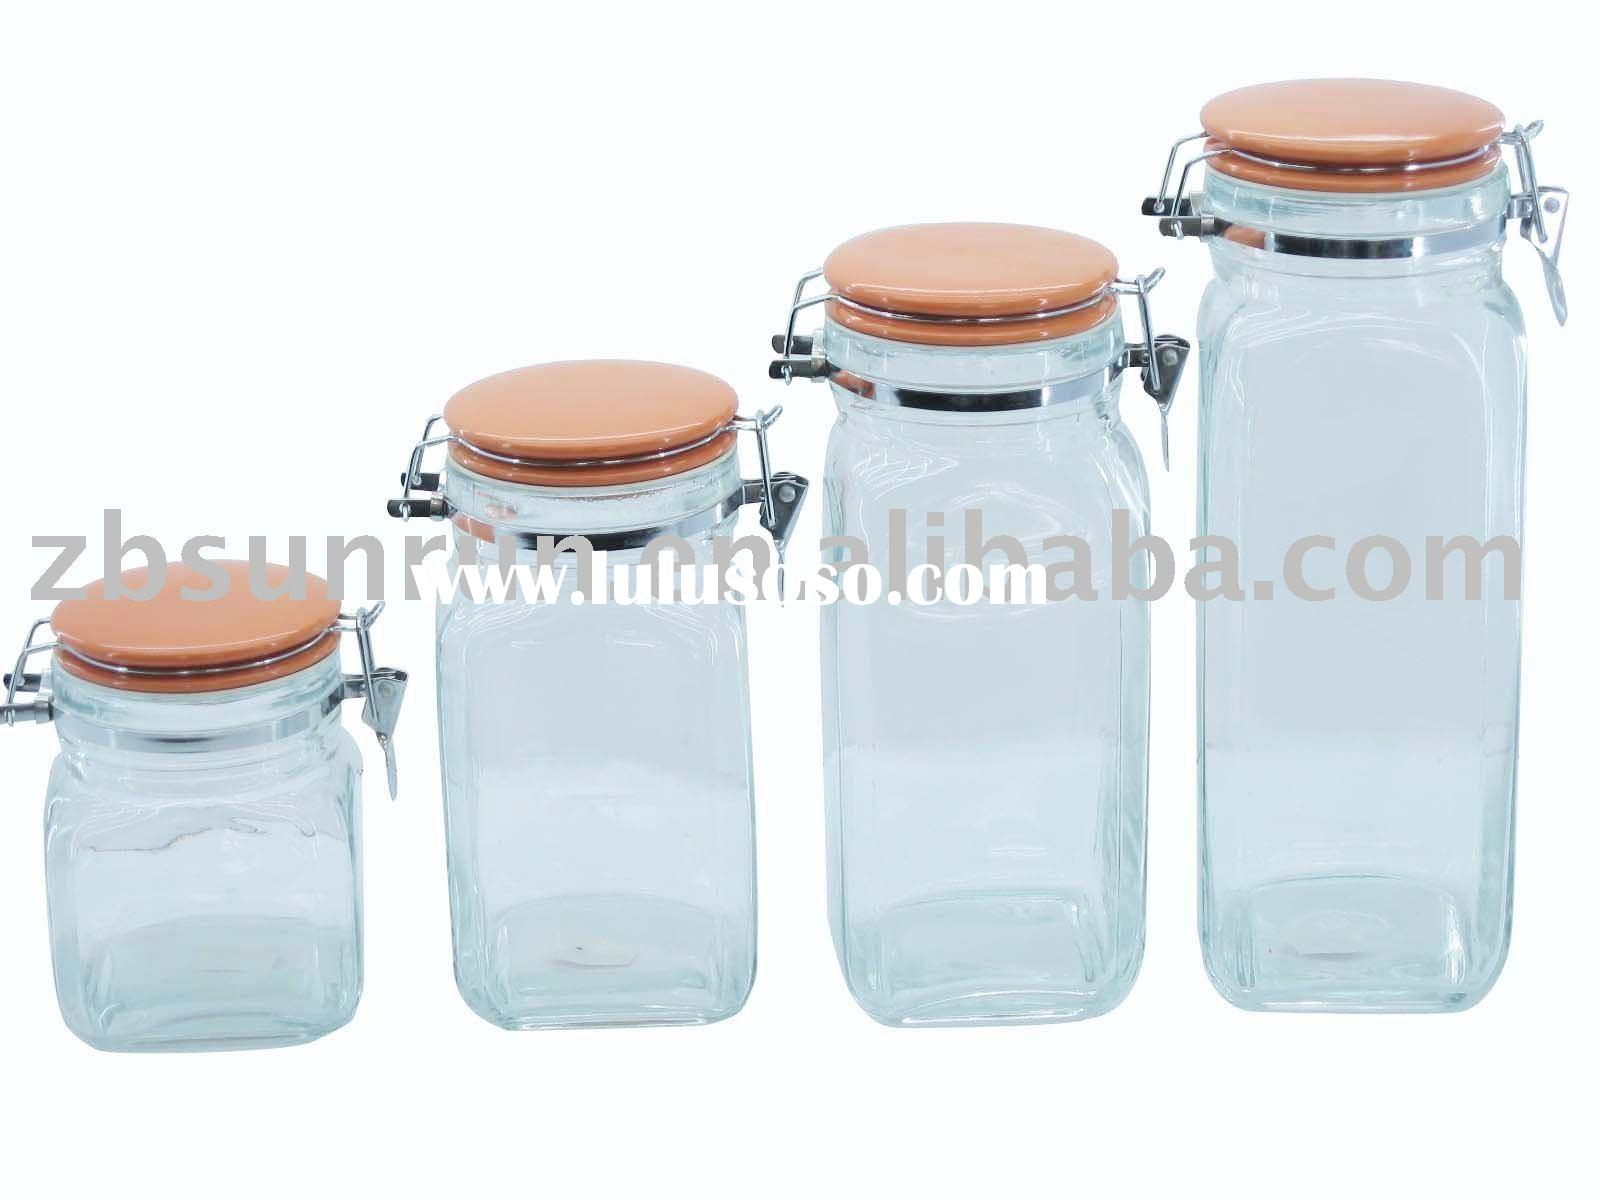 Square Glass Jar With Ceramic Lid&Metal Latch